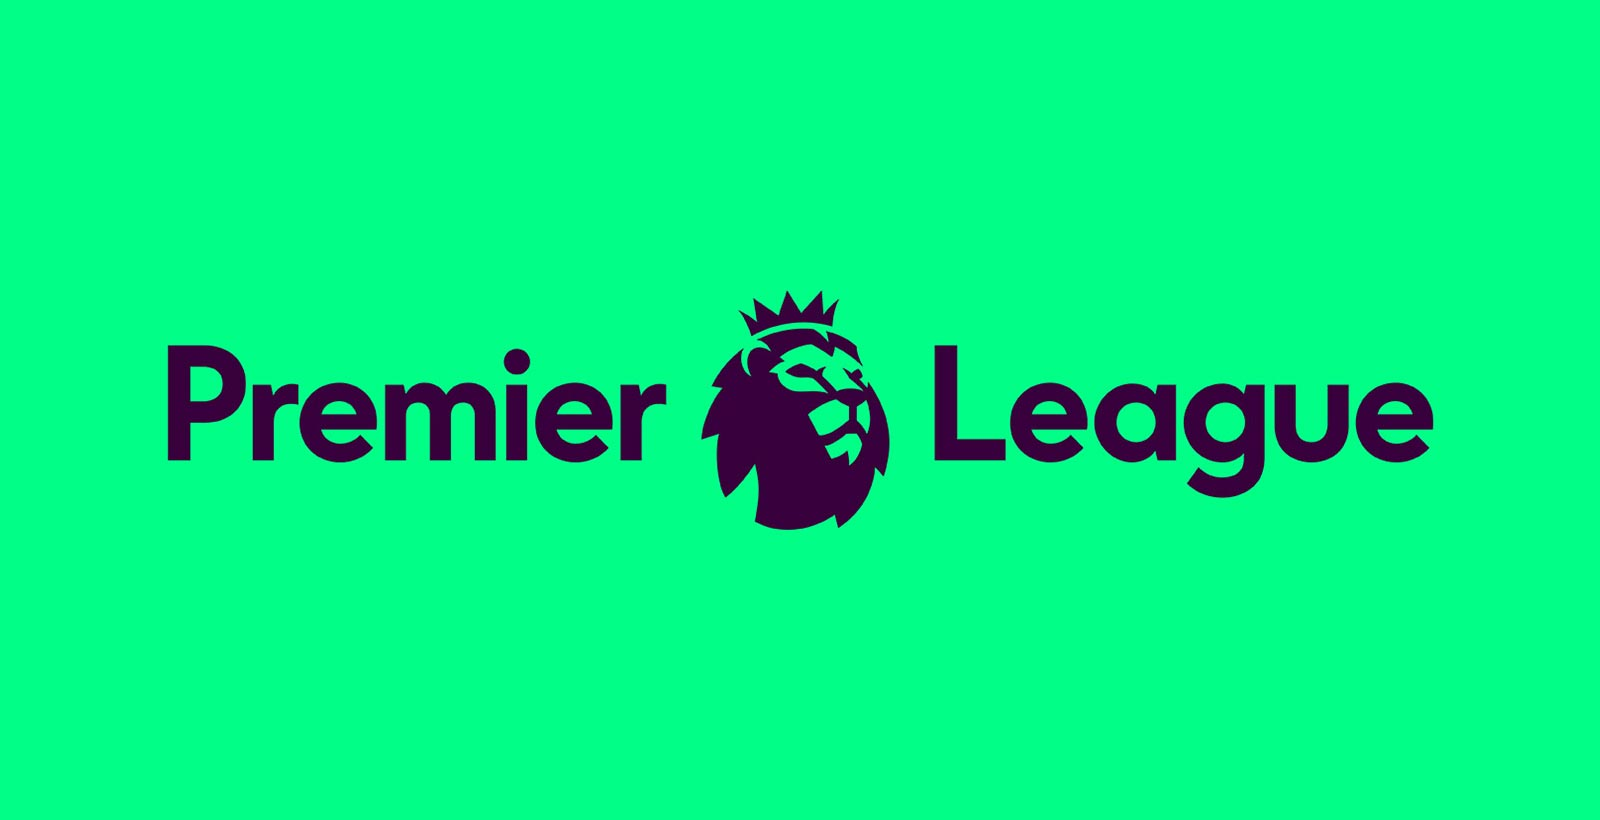 premier league barclays sleeve patch without season headlines unveiled revealed onwards comes features